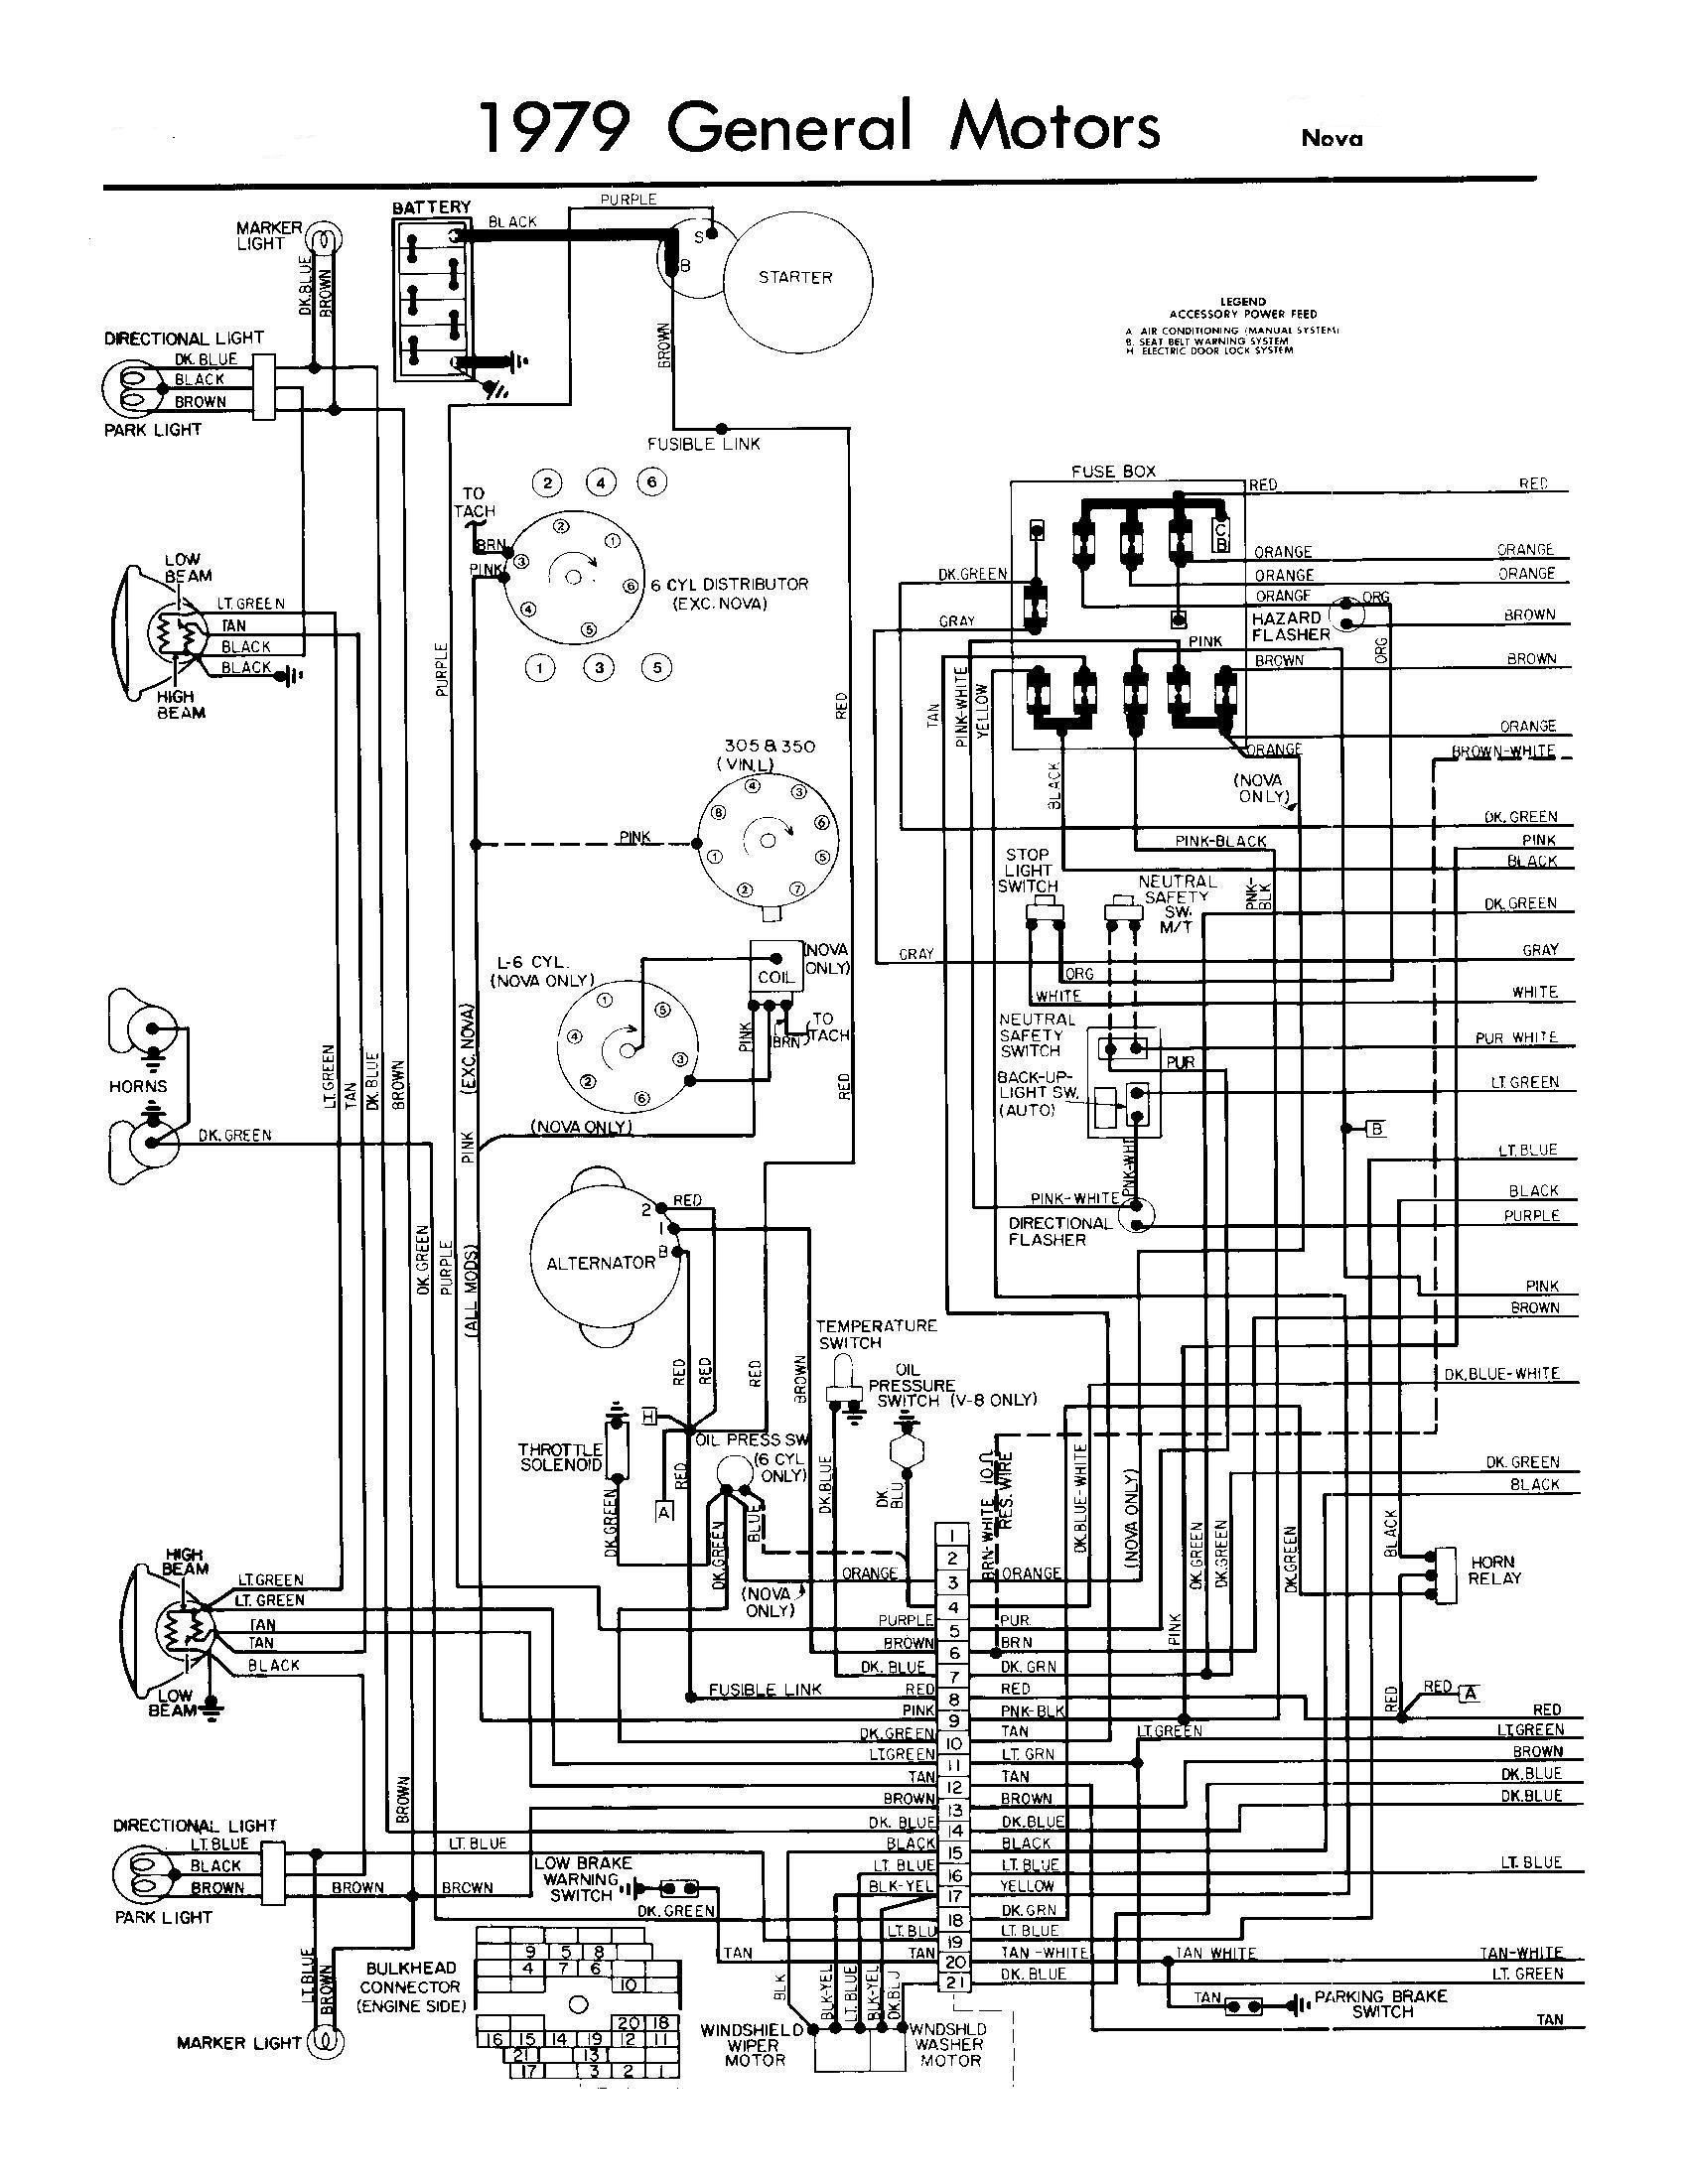 2002 dodge ram electrical schematic